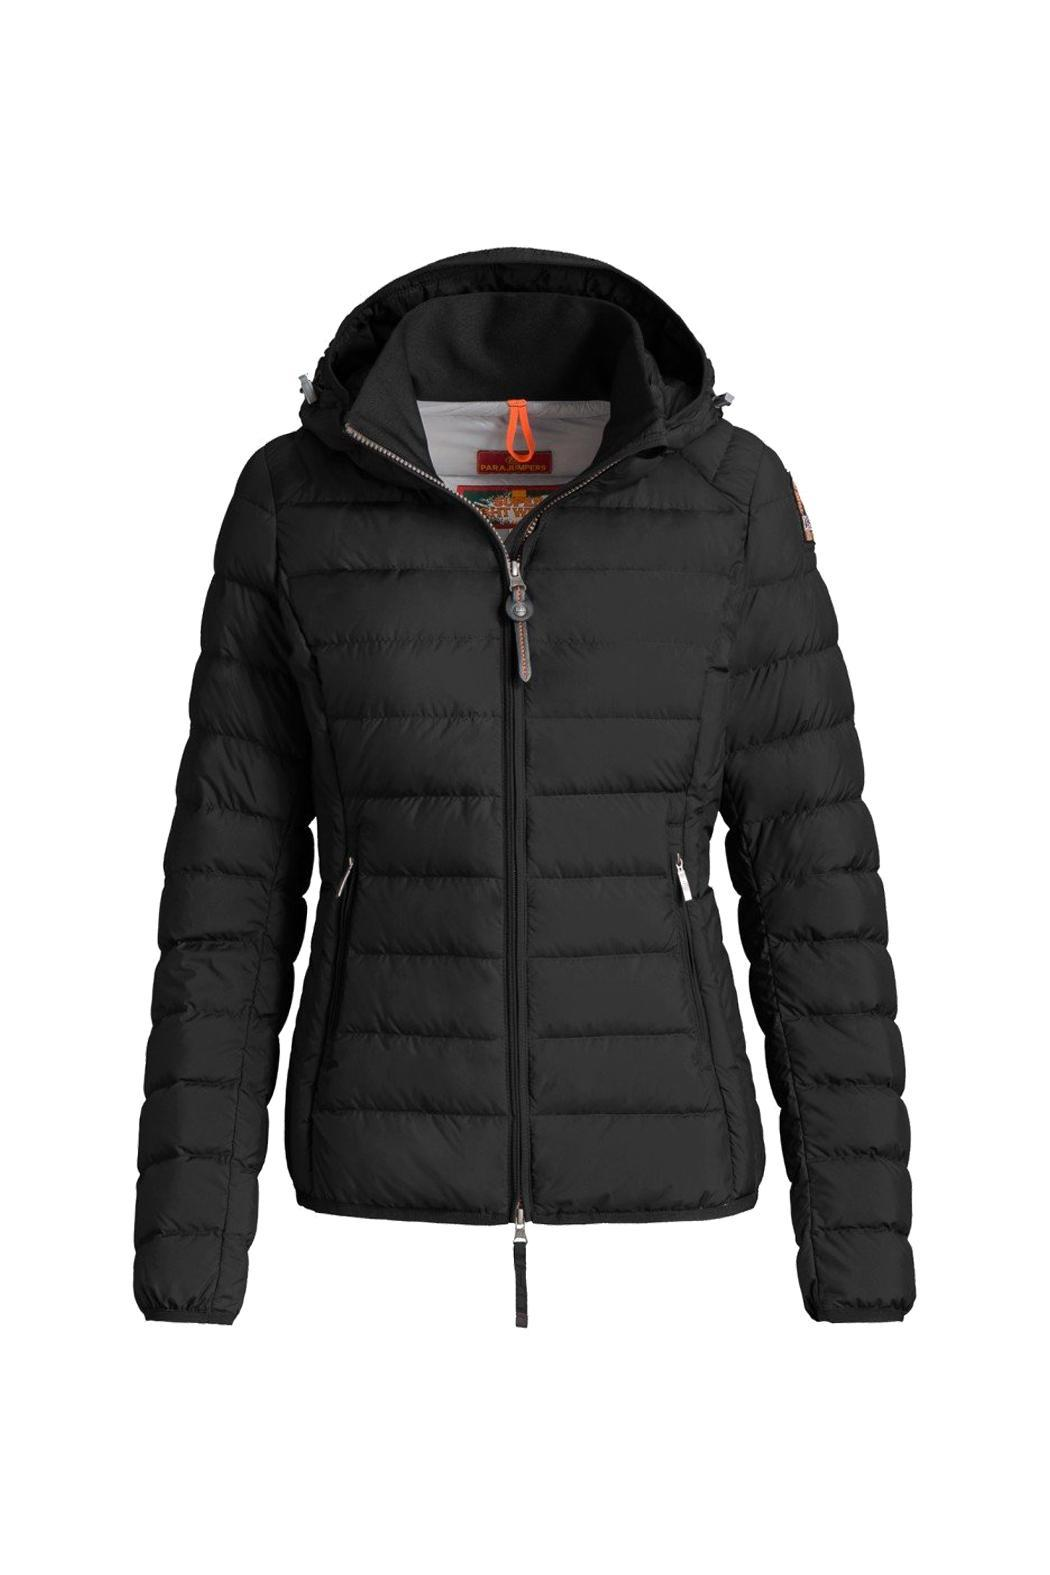 parajumpers april down jacket